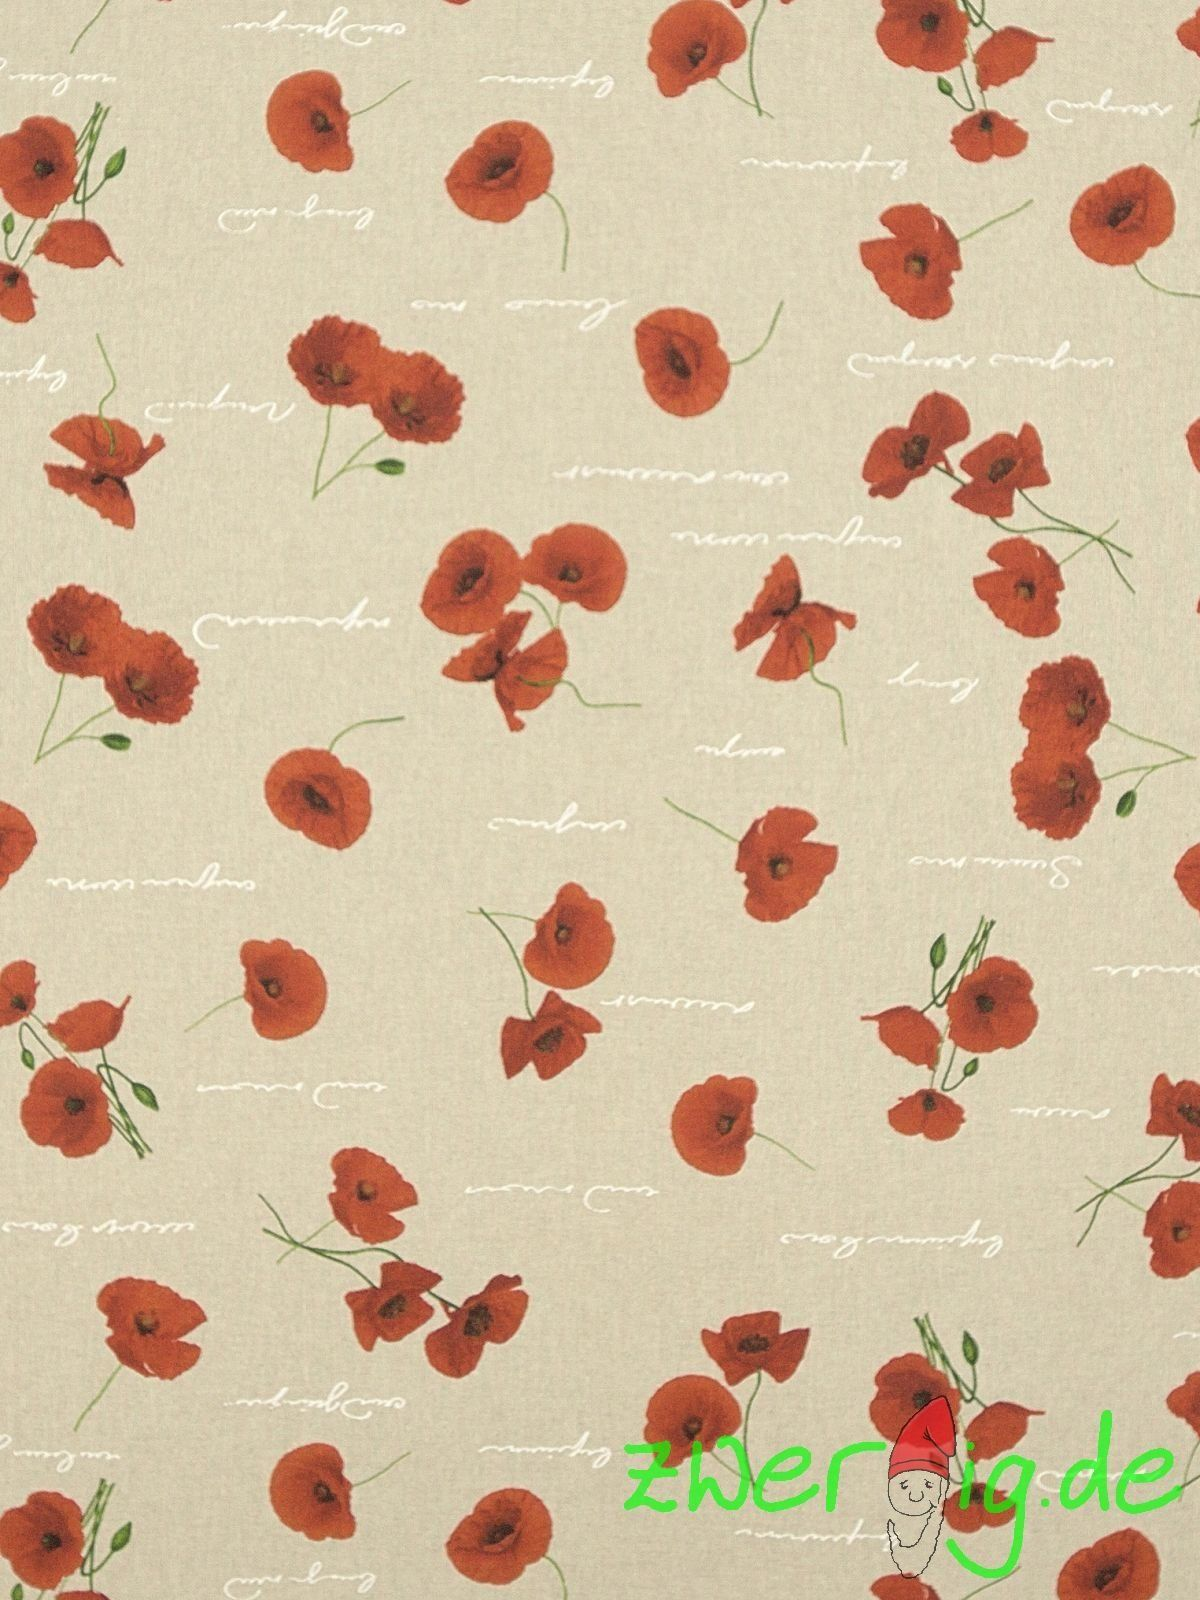 Cotton Mix Fabric Poppy Gossip Poppy On Natural Decomaterial Mohn Stoffe Und Dekostoffe